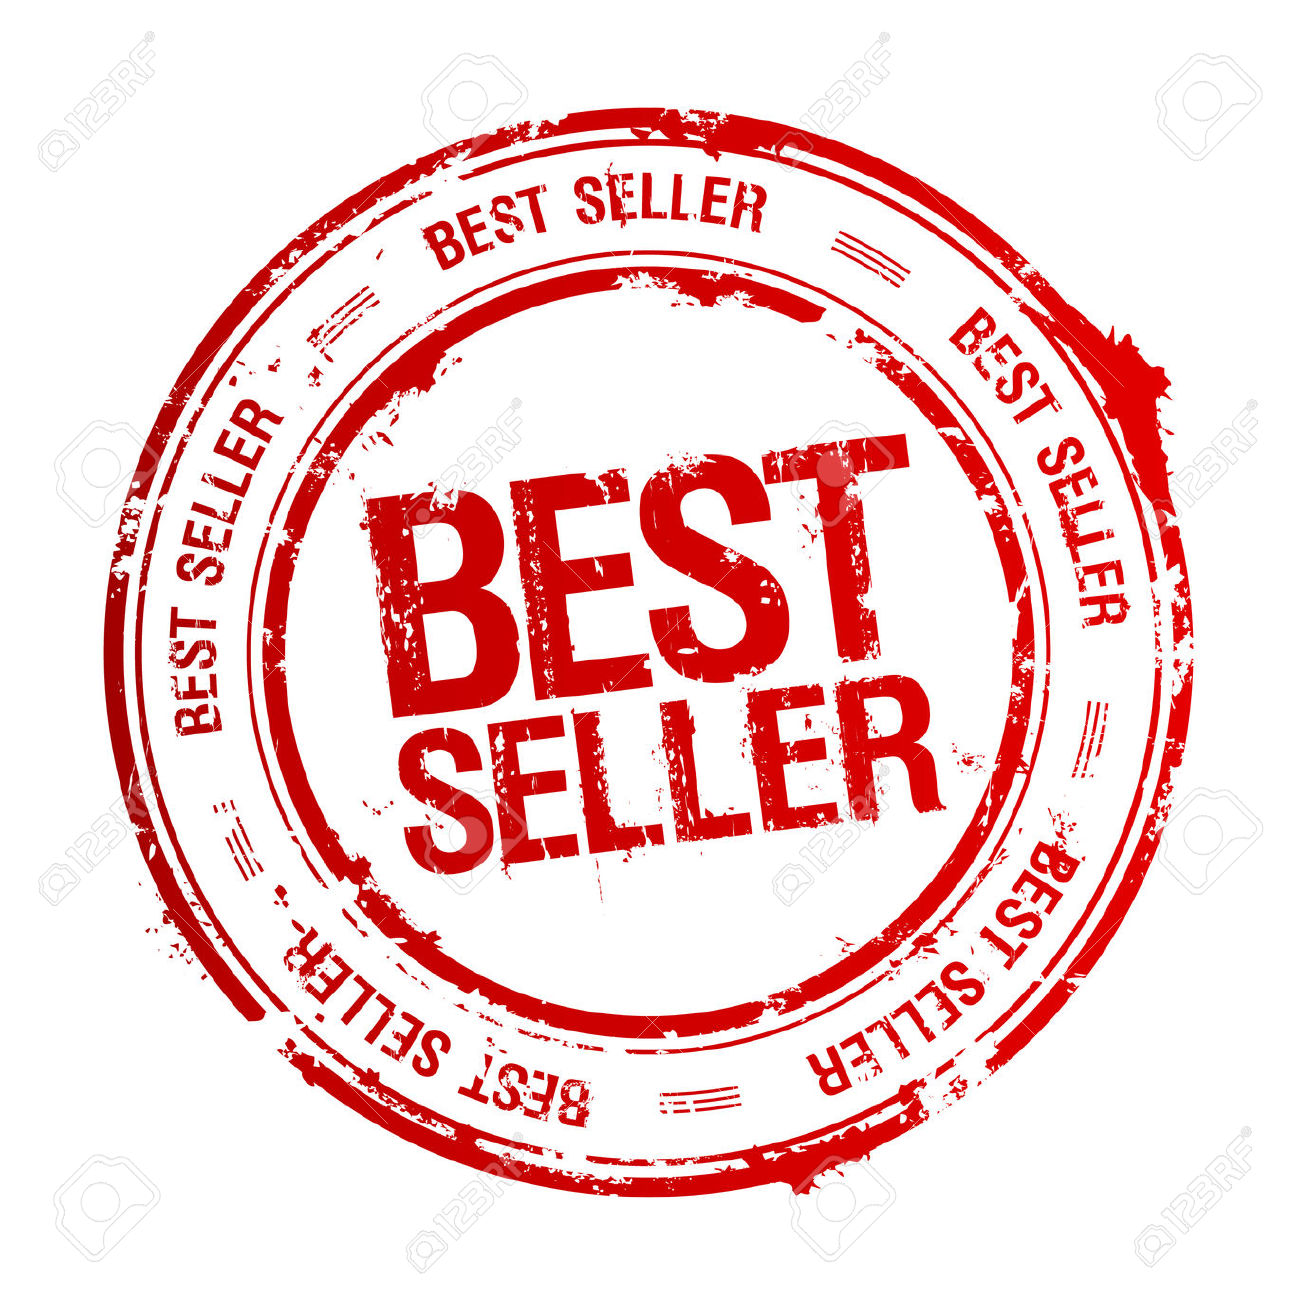 Best selling clipart.